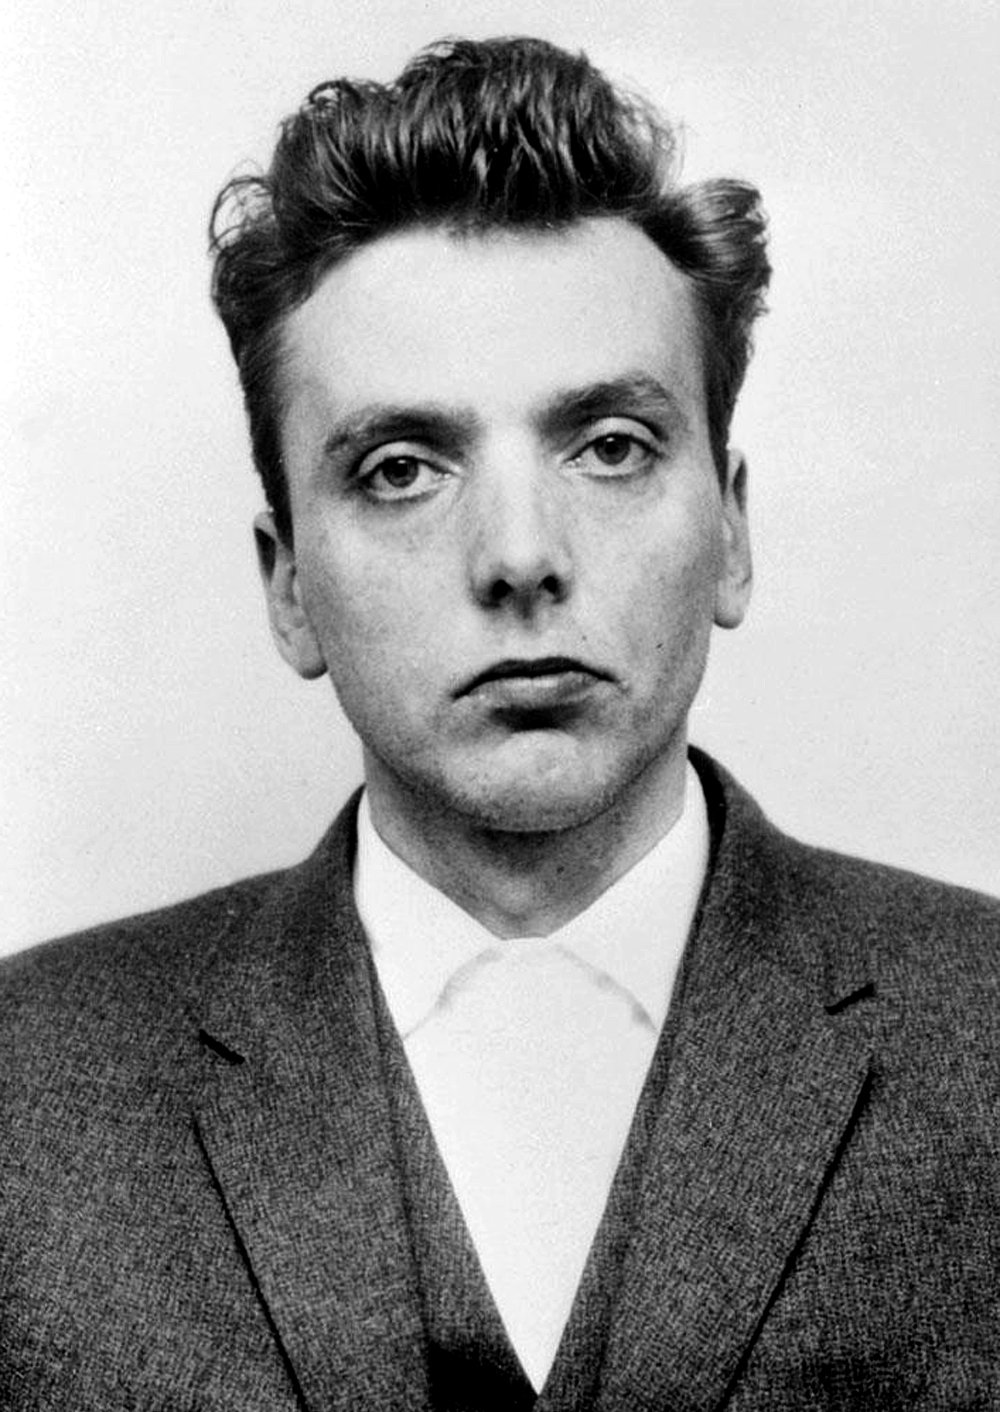 Undated file photo of Ian Brady